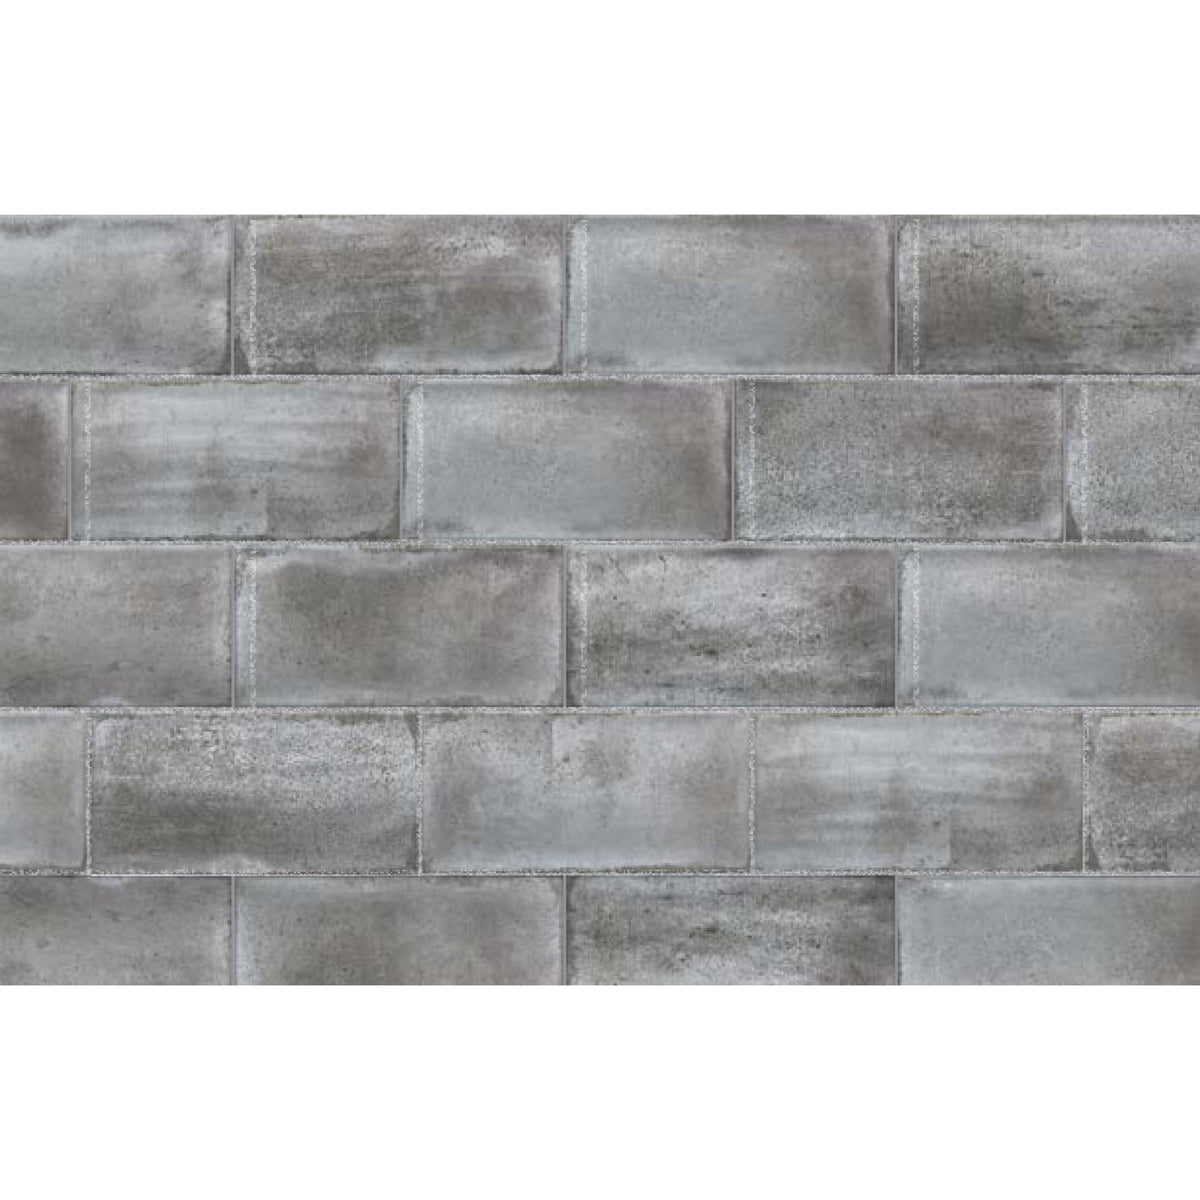 Topcu - Vita Decorative Wall Tile 4 in. x 8 in. - Grafite